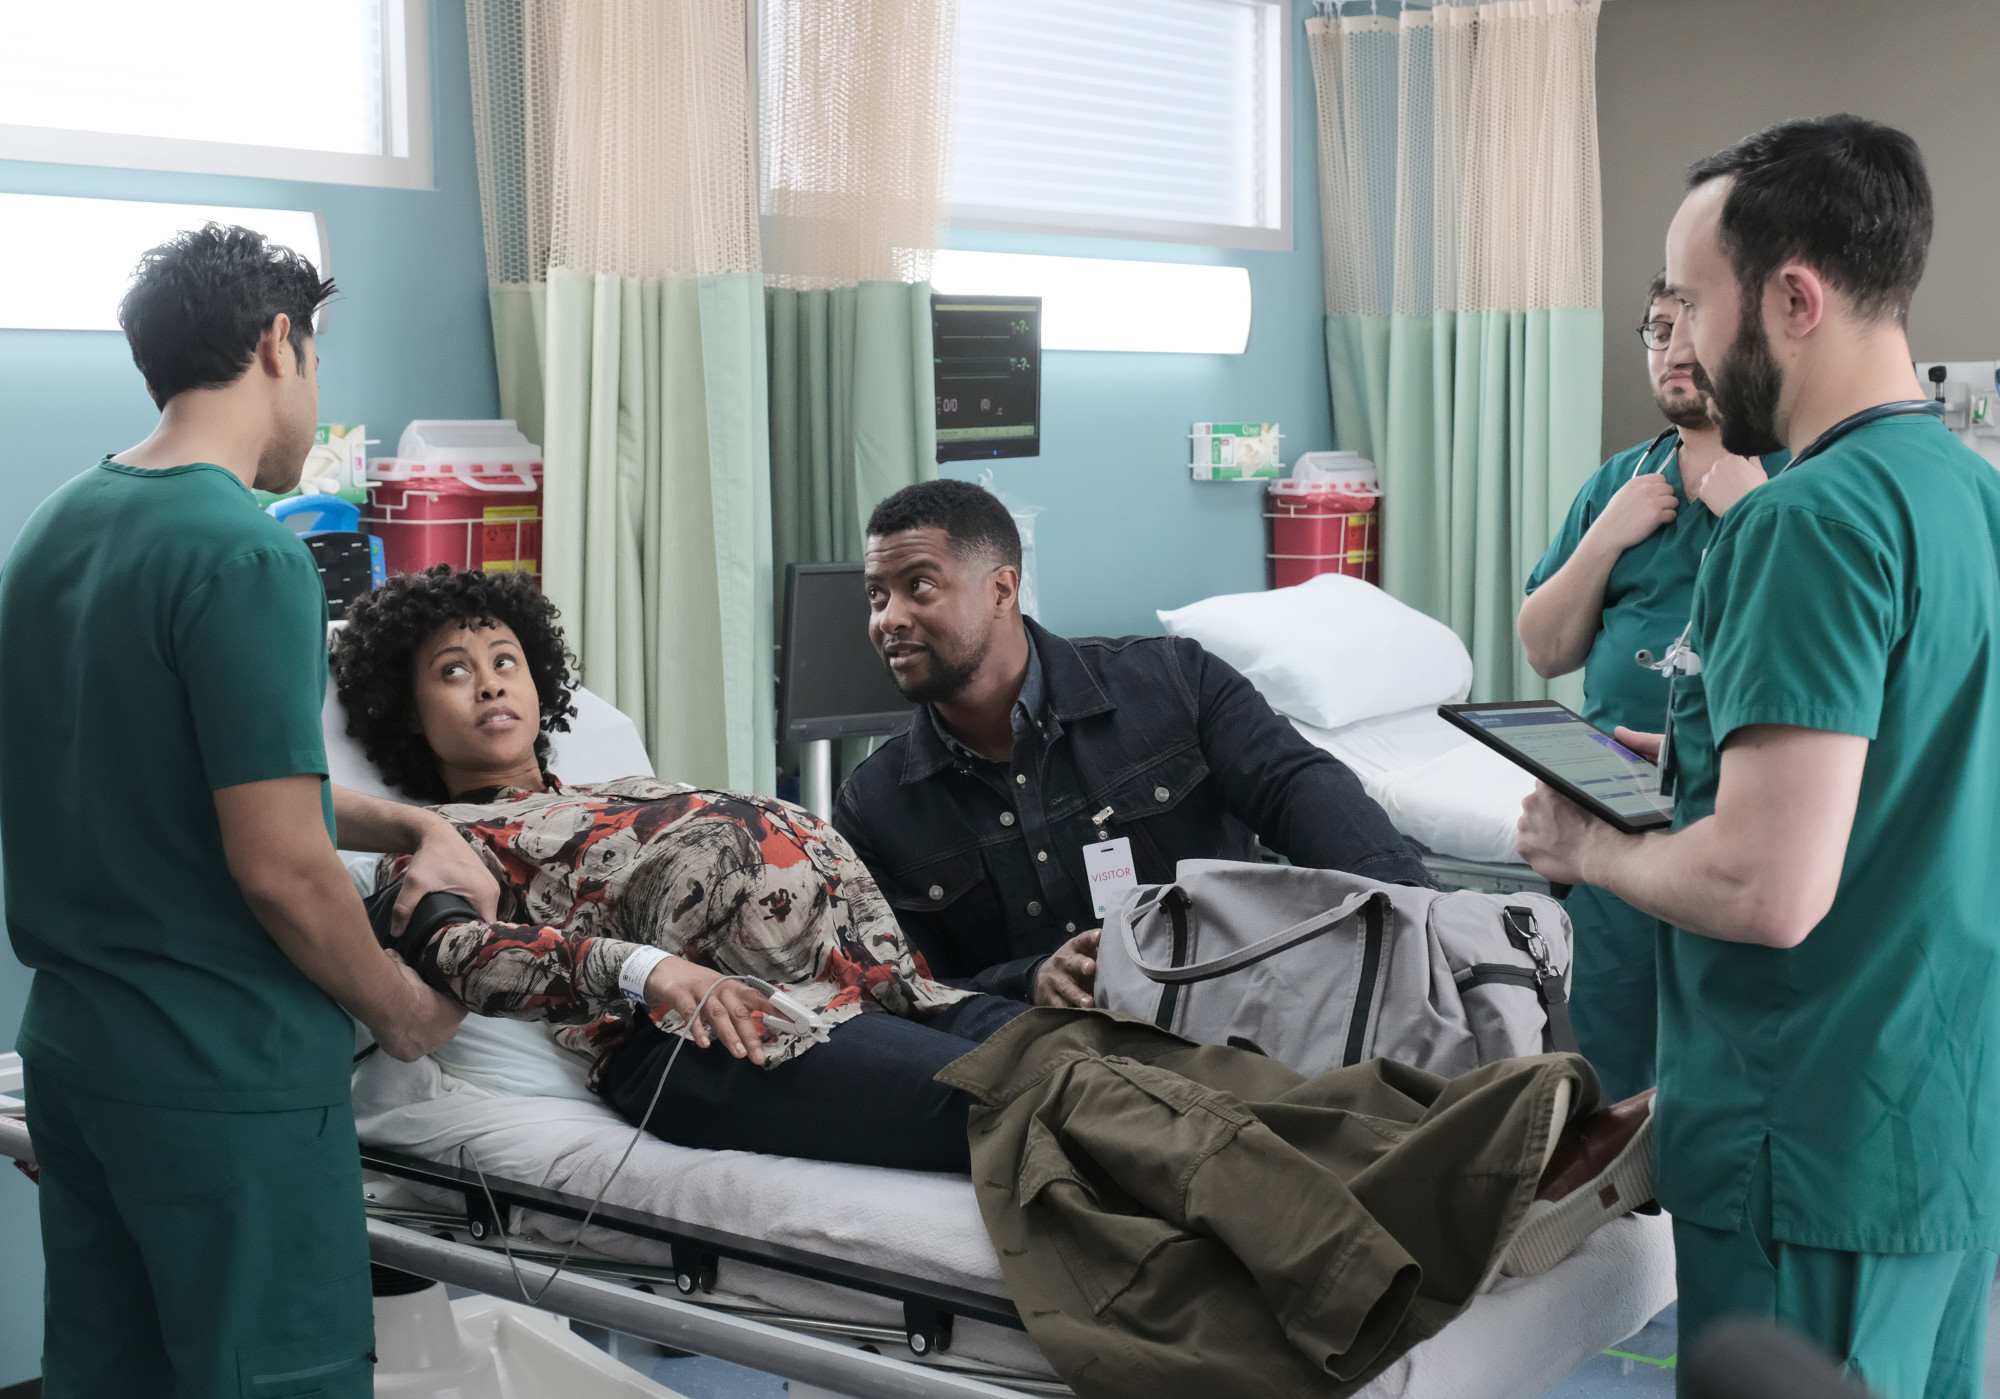 """THE RESIDENT: L-R:  Manish Dayal, guest star Vanessa Antoine, guest star Kamal Bolden and guest star Tasso Feldman in the """"Black Cloud"""" episode of THE RESIDENT airing Monday, April 15 (8:00-9:00 PM ET/PT) on FOX. ©2019 Fox Media LLC Cr: Guy D'Alema/FOX."""